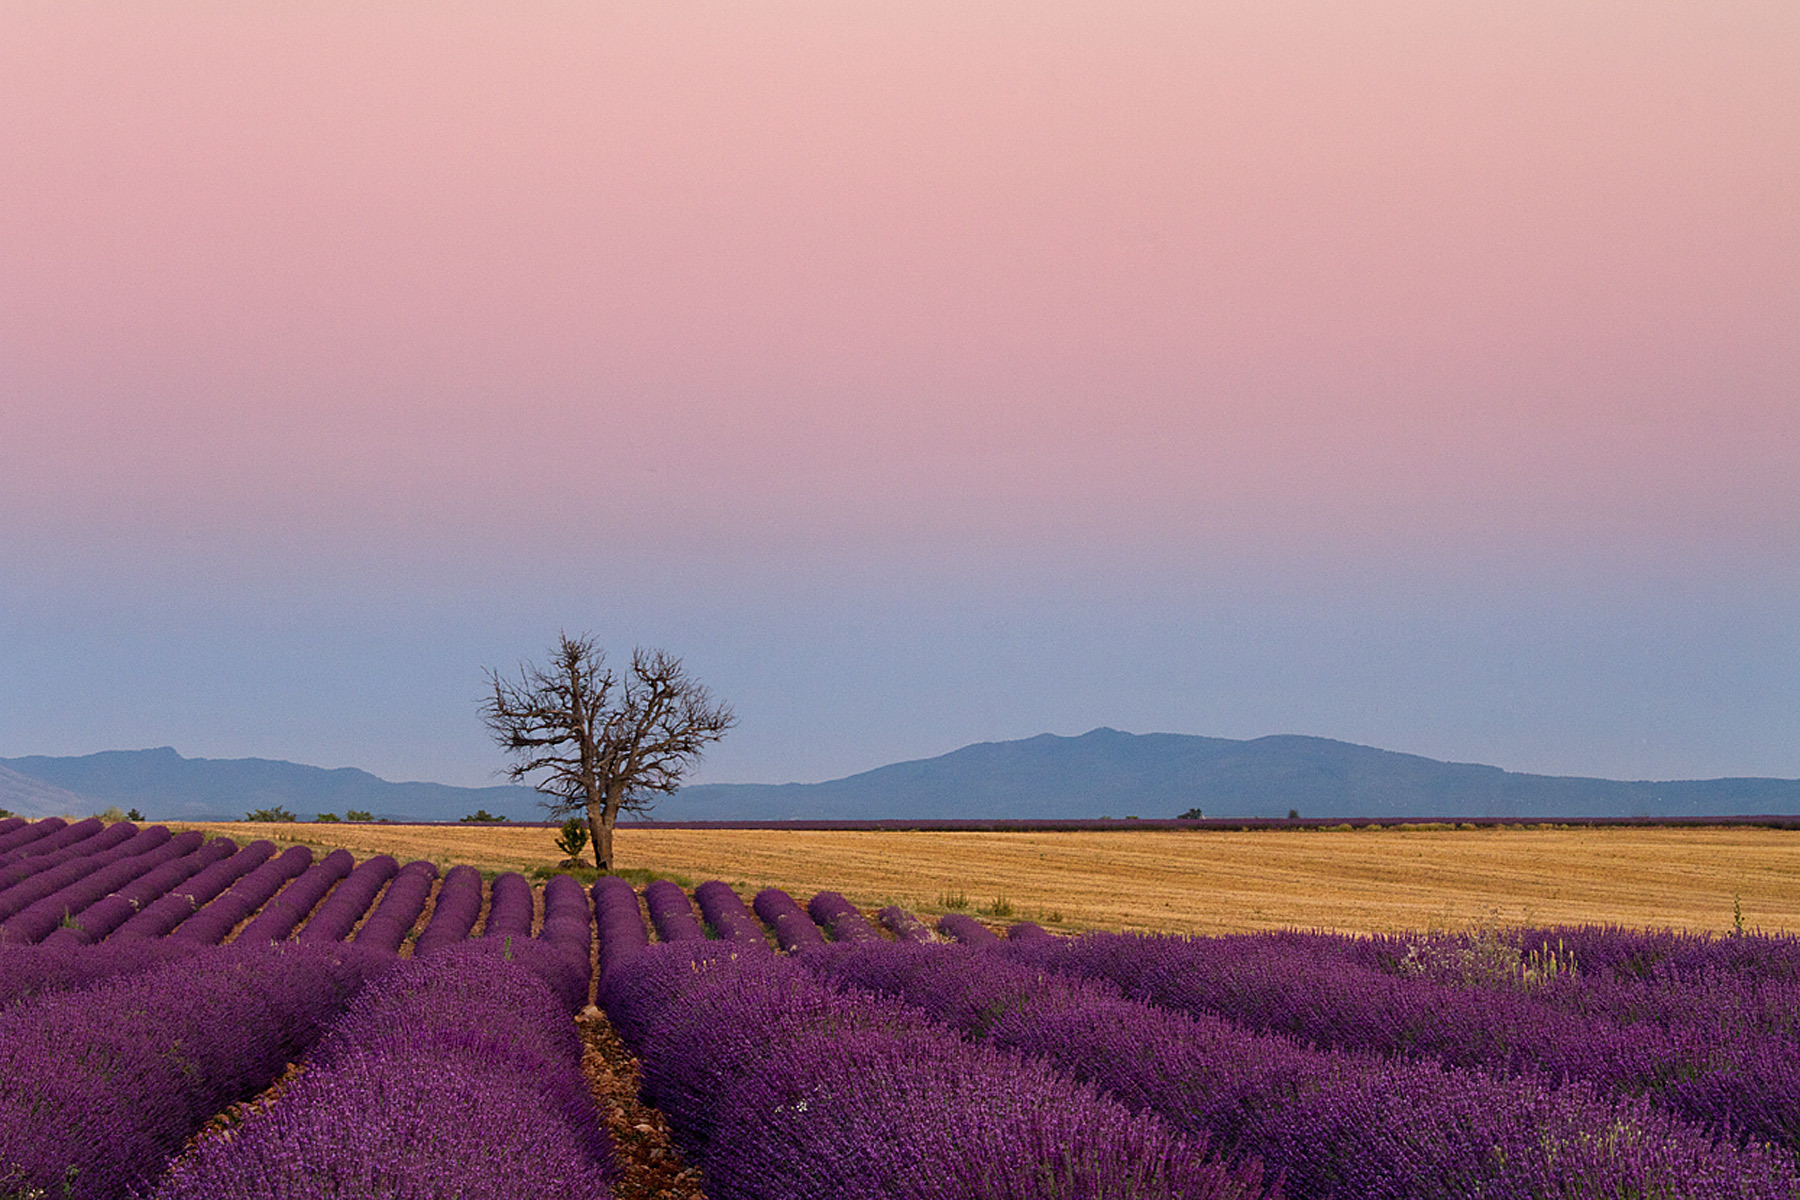 Evening Twilight - Valensole Plain - Provence - France